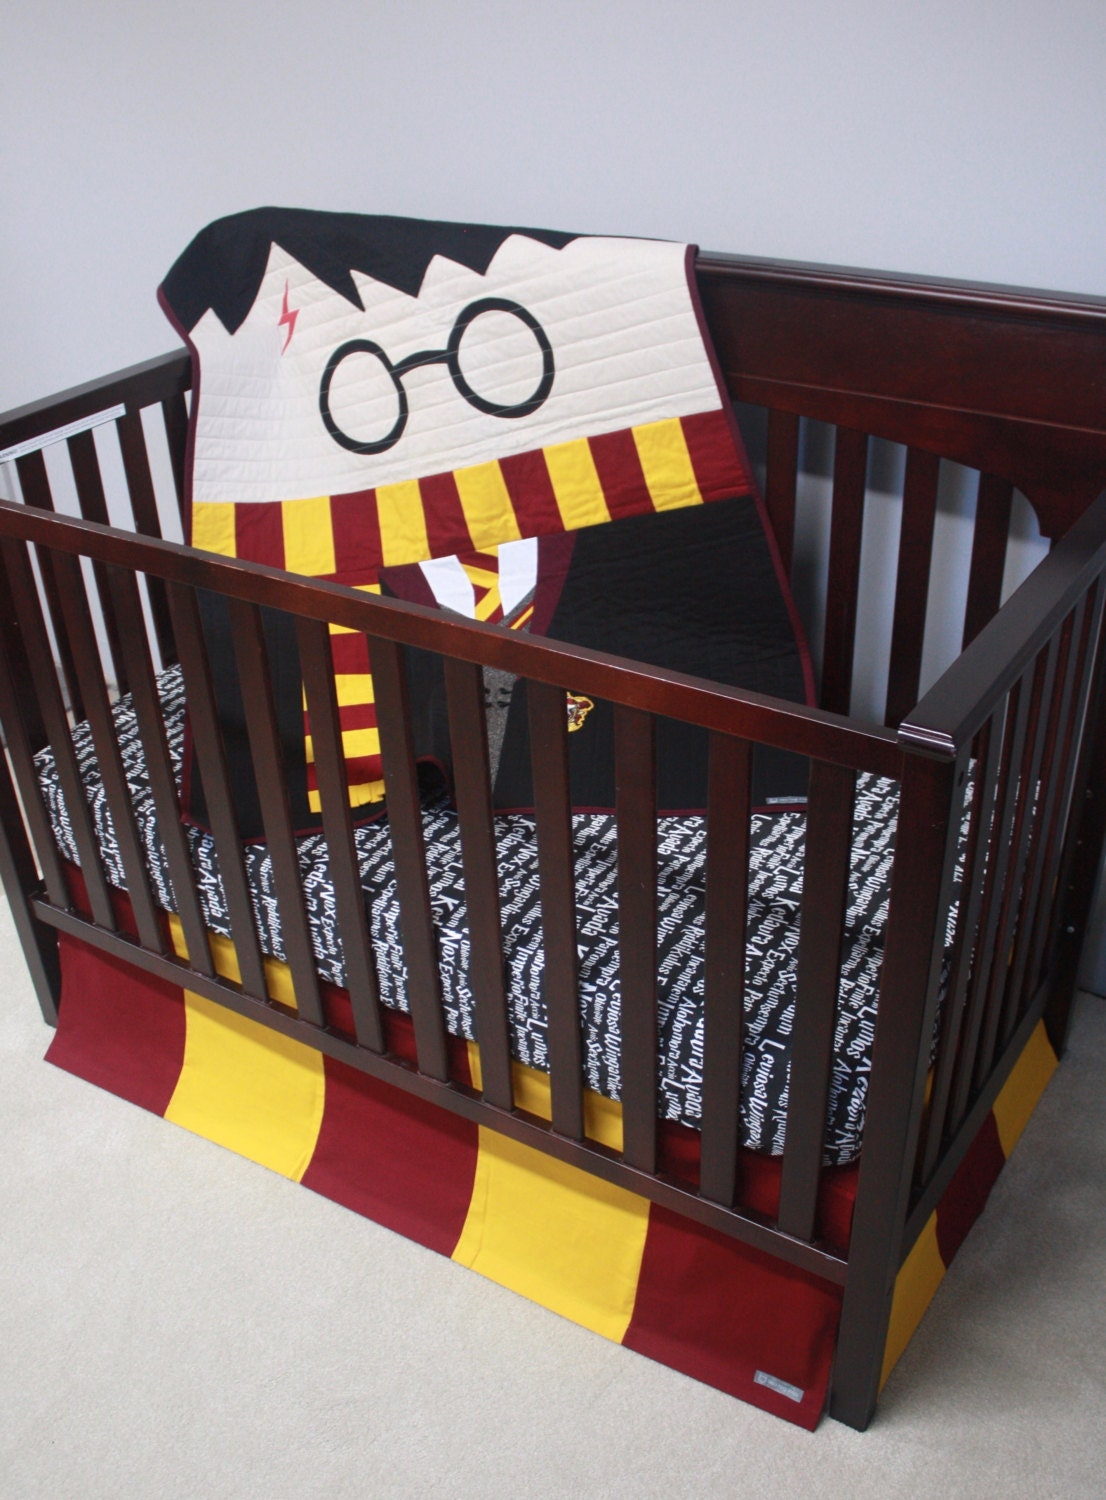 Harry potter baby bedding harry potter variant 2 custom crib bedding mto - Harry potter crib set ...